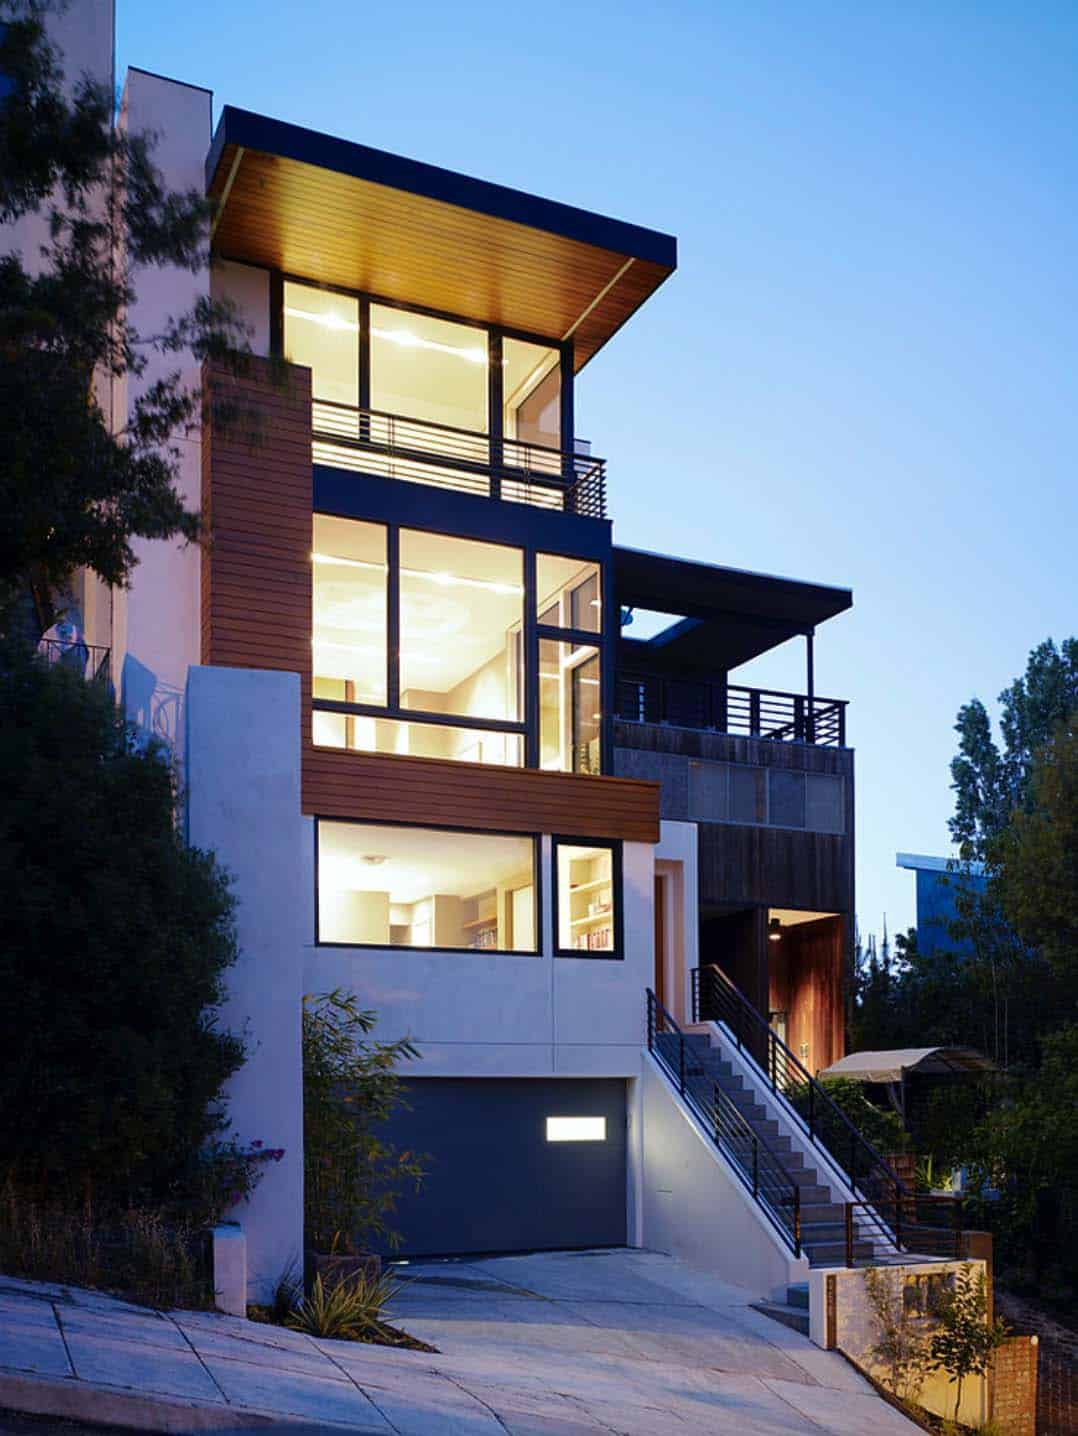 Architecture Modern Hillside Home-28-1 Kindesign